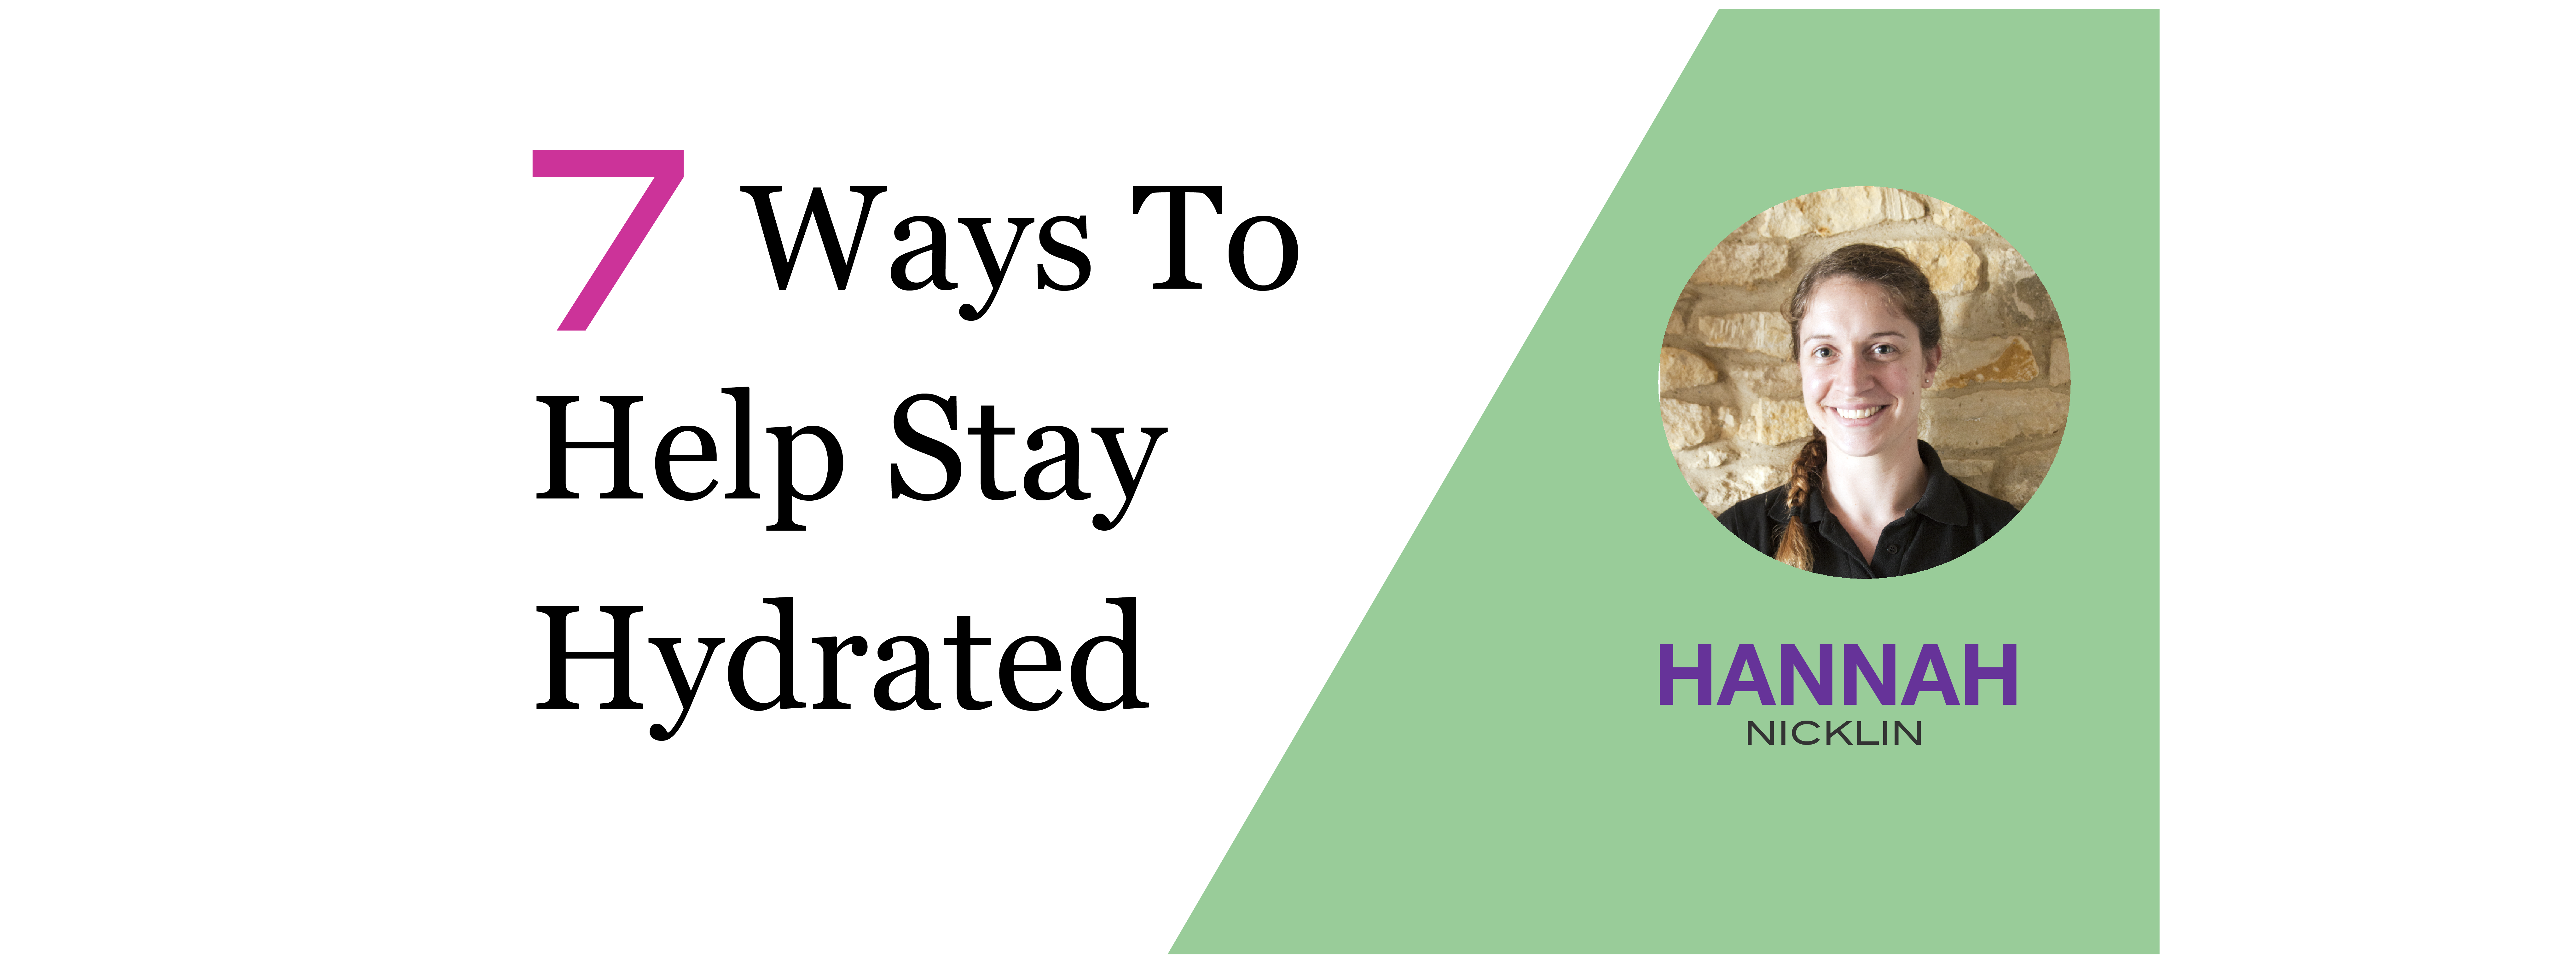 7 Ways To Keep Hydrated By Drinking Water